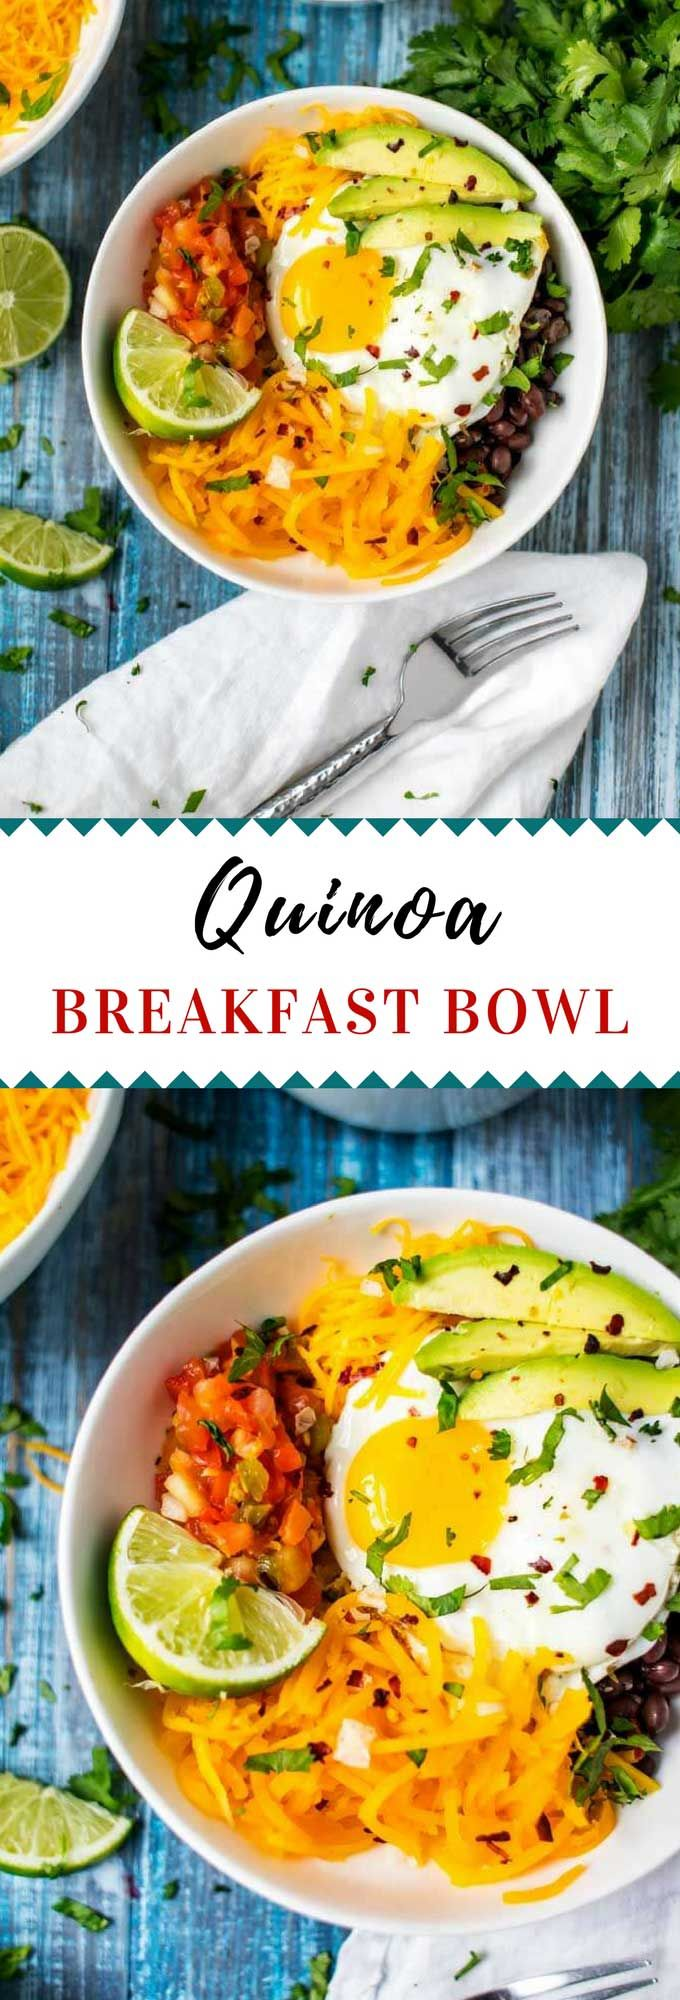 Quinoa Breakfast Bowl | Posted By: DebbieNet.com